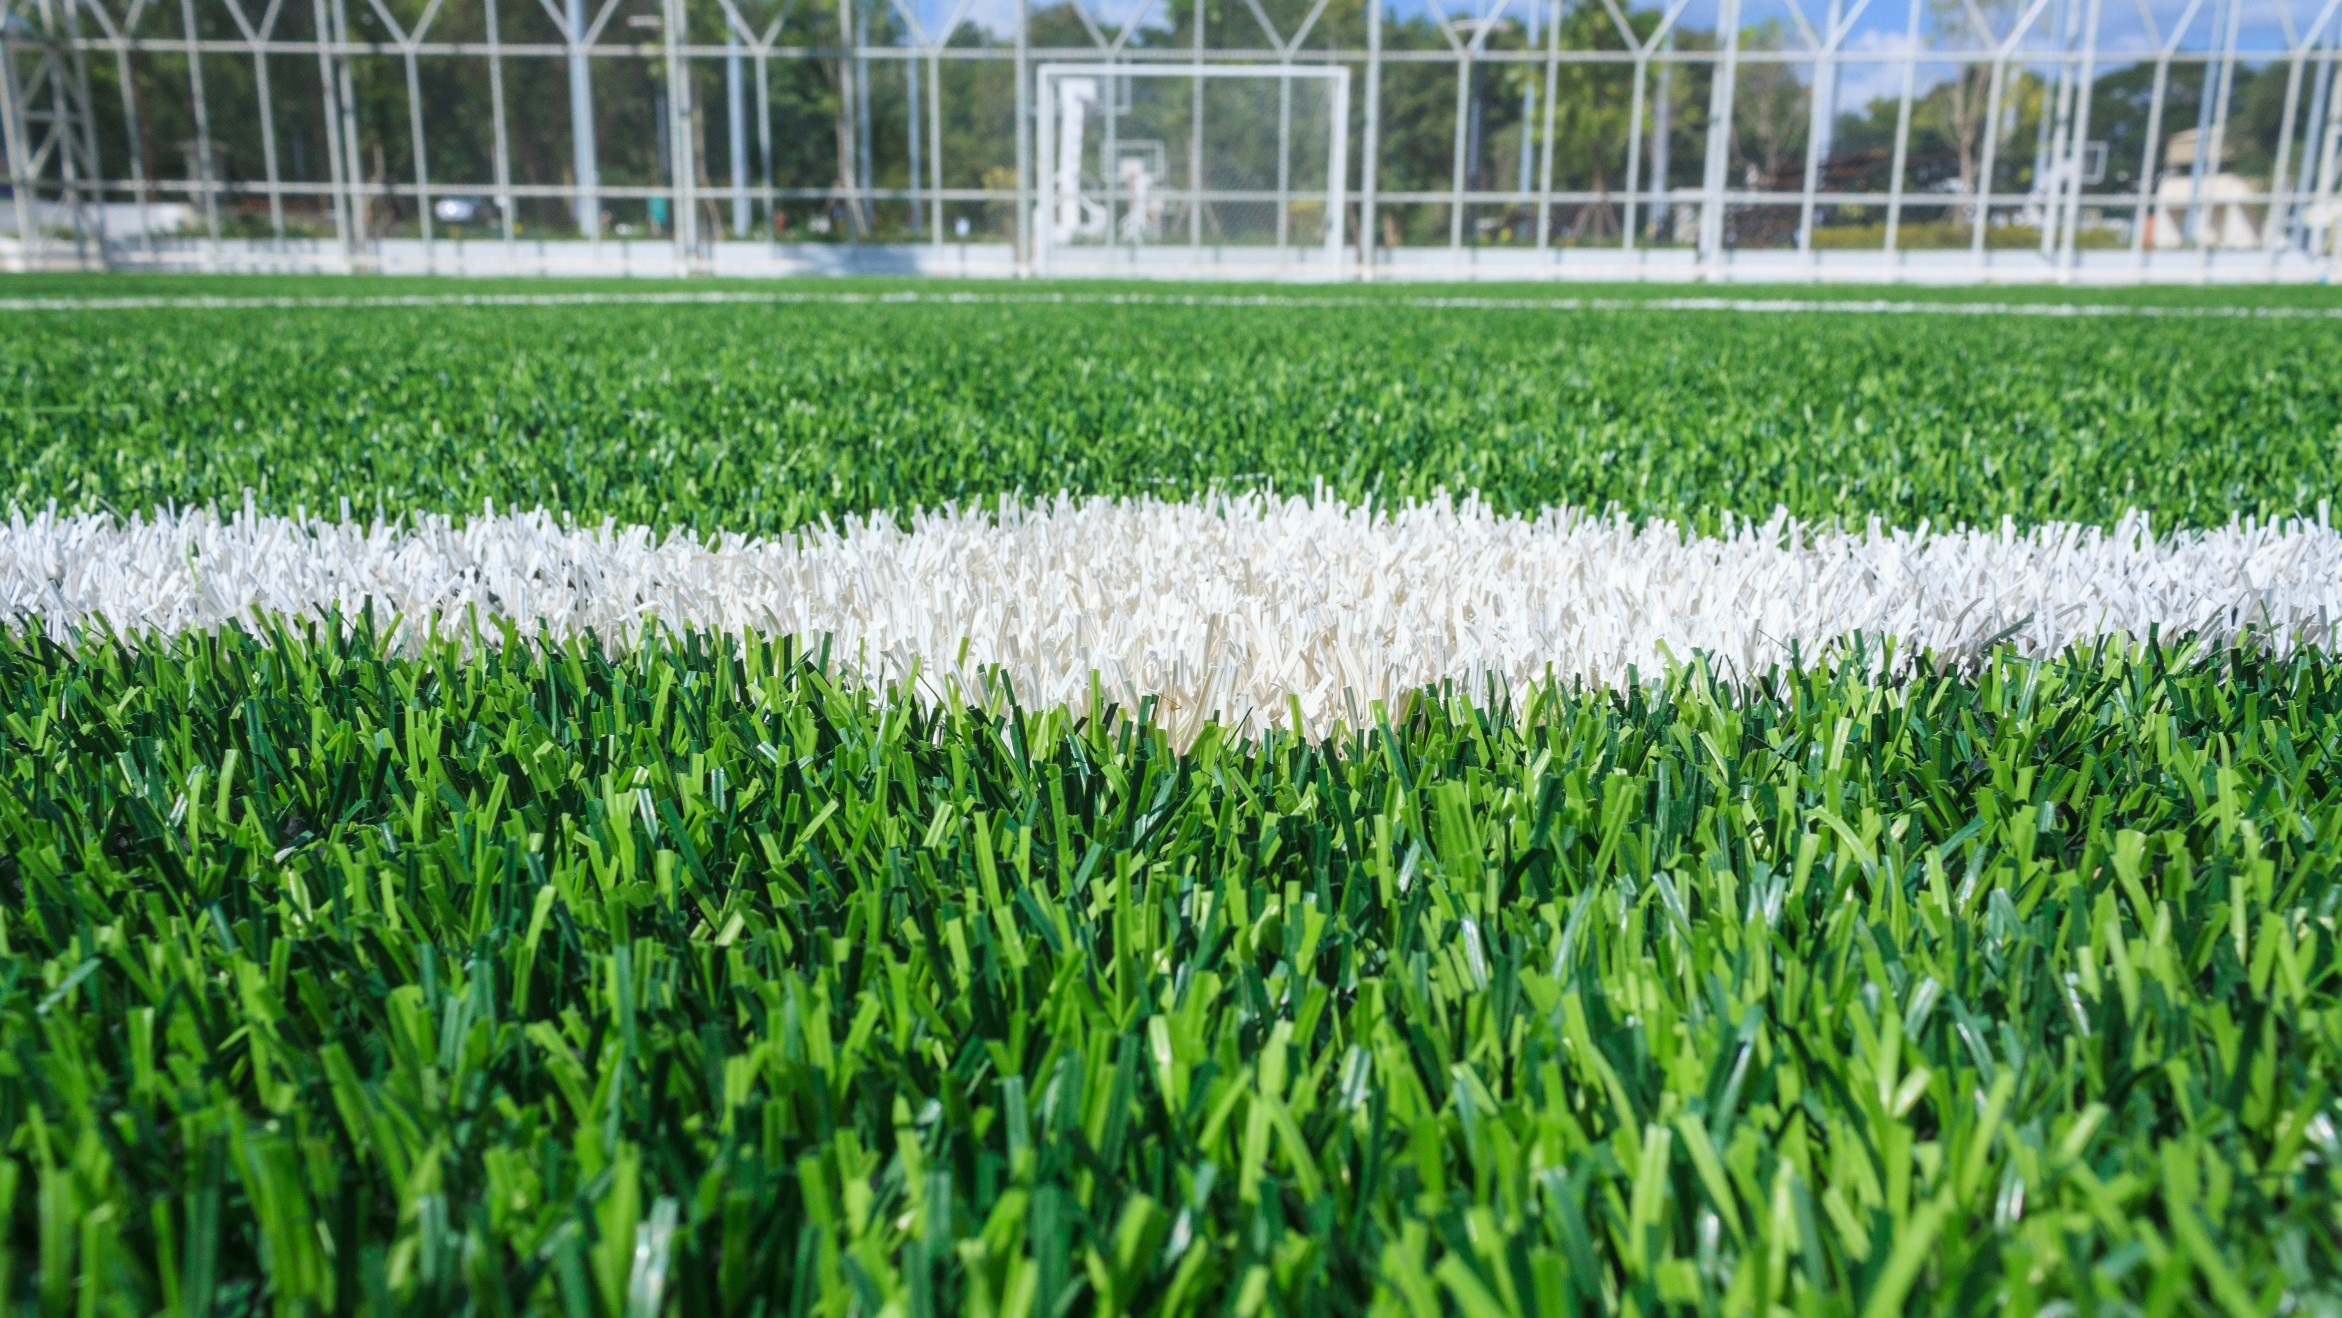 A 3G pitch can be finished with different markings to define different play areas